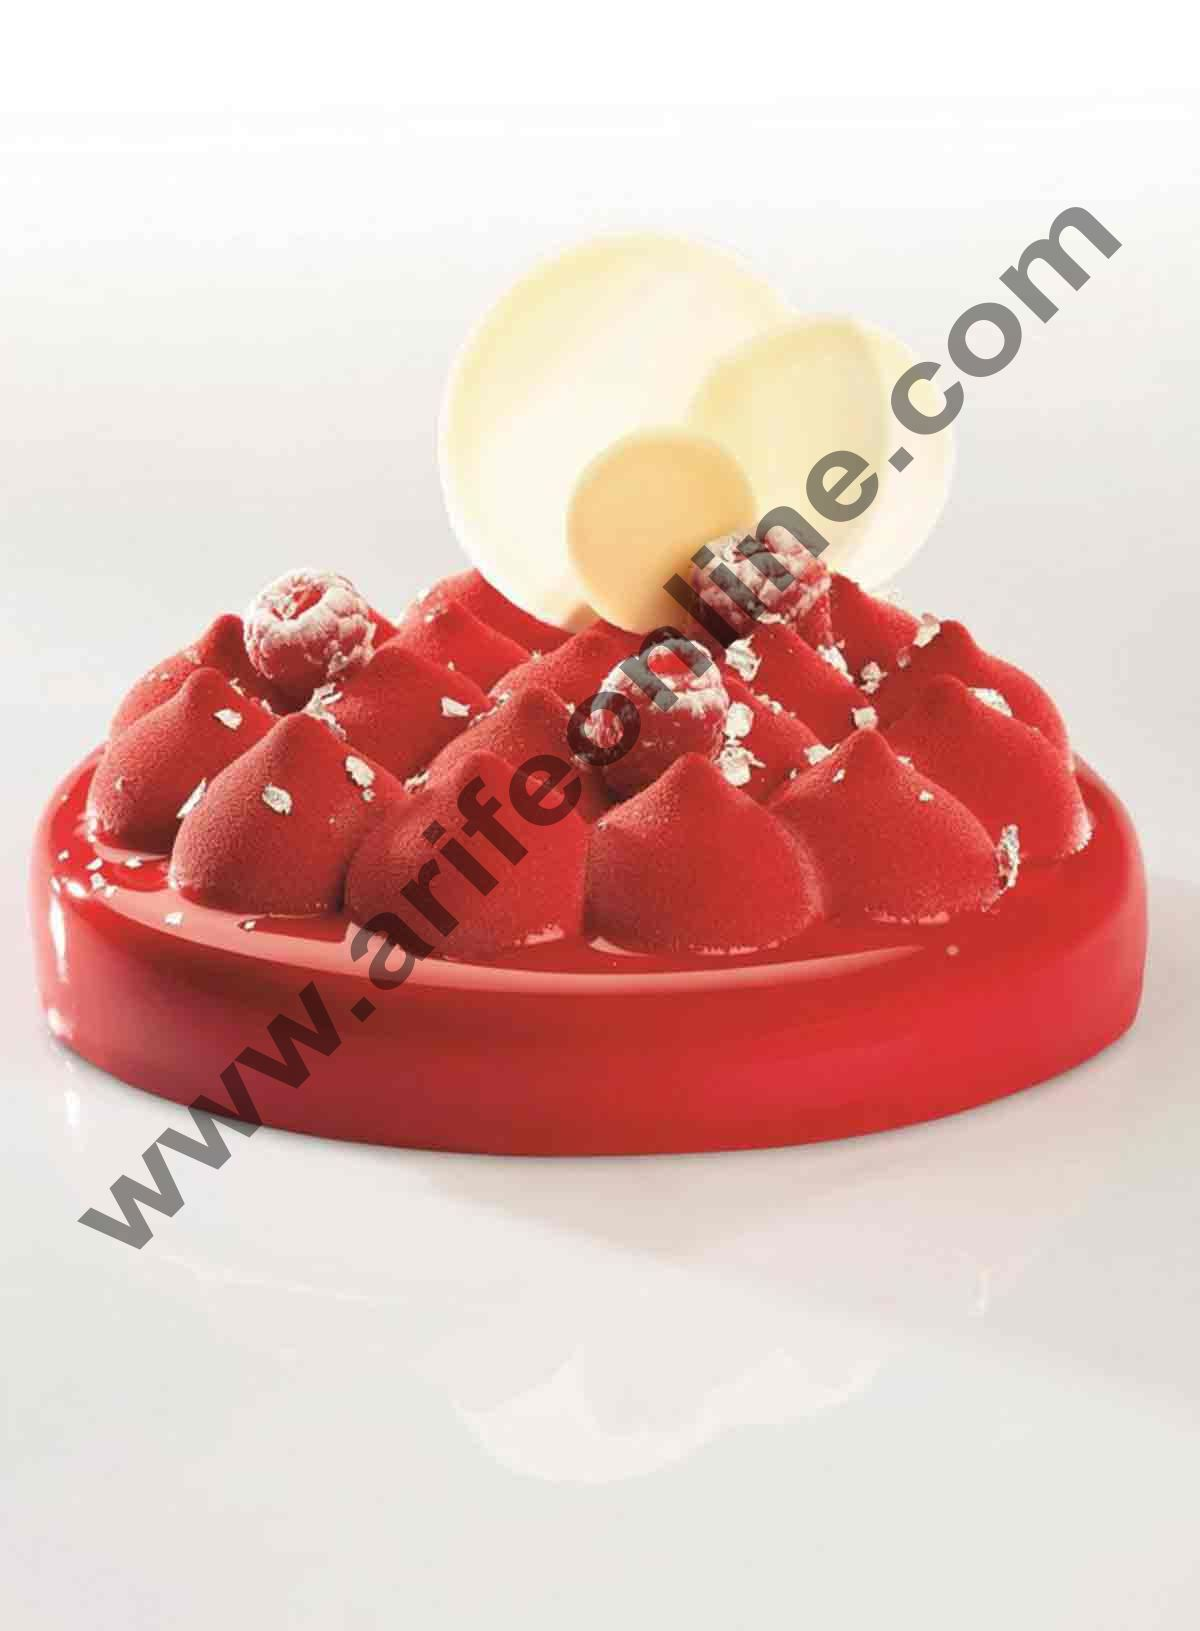 Cake Decor Silicon Rounded Puffy Cake Design Cake Mould Mousse Cake Mould Silicon Moulds